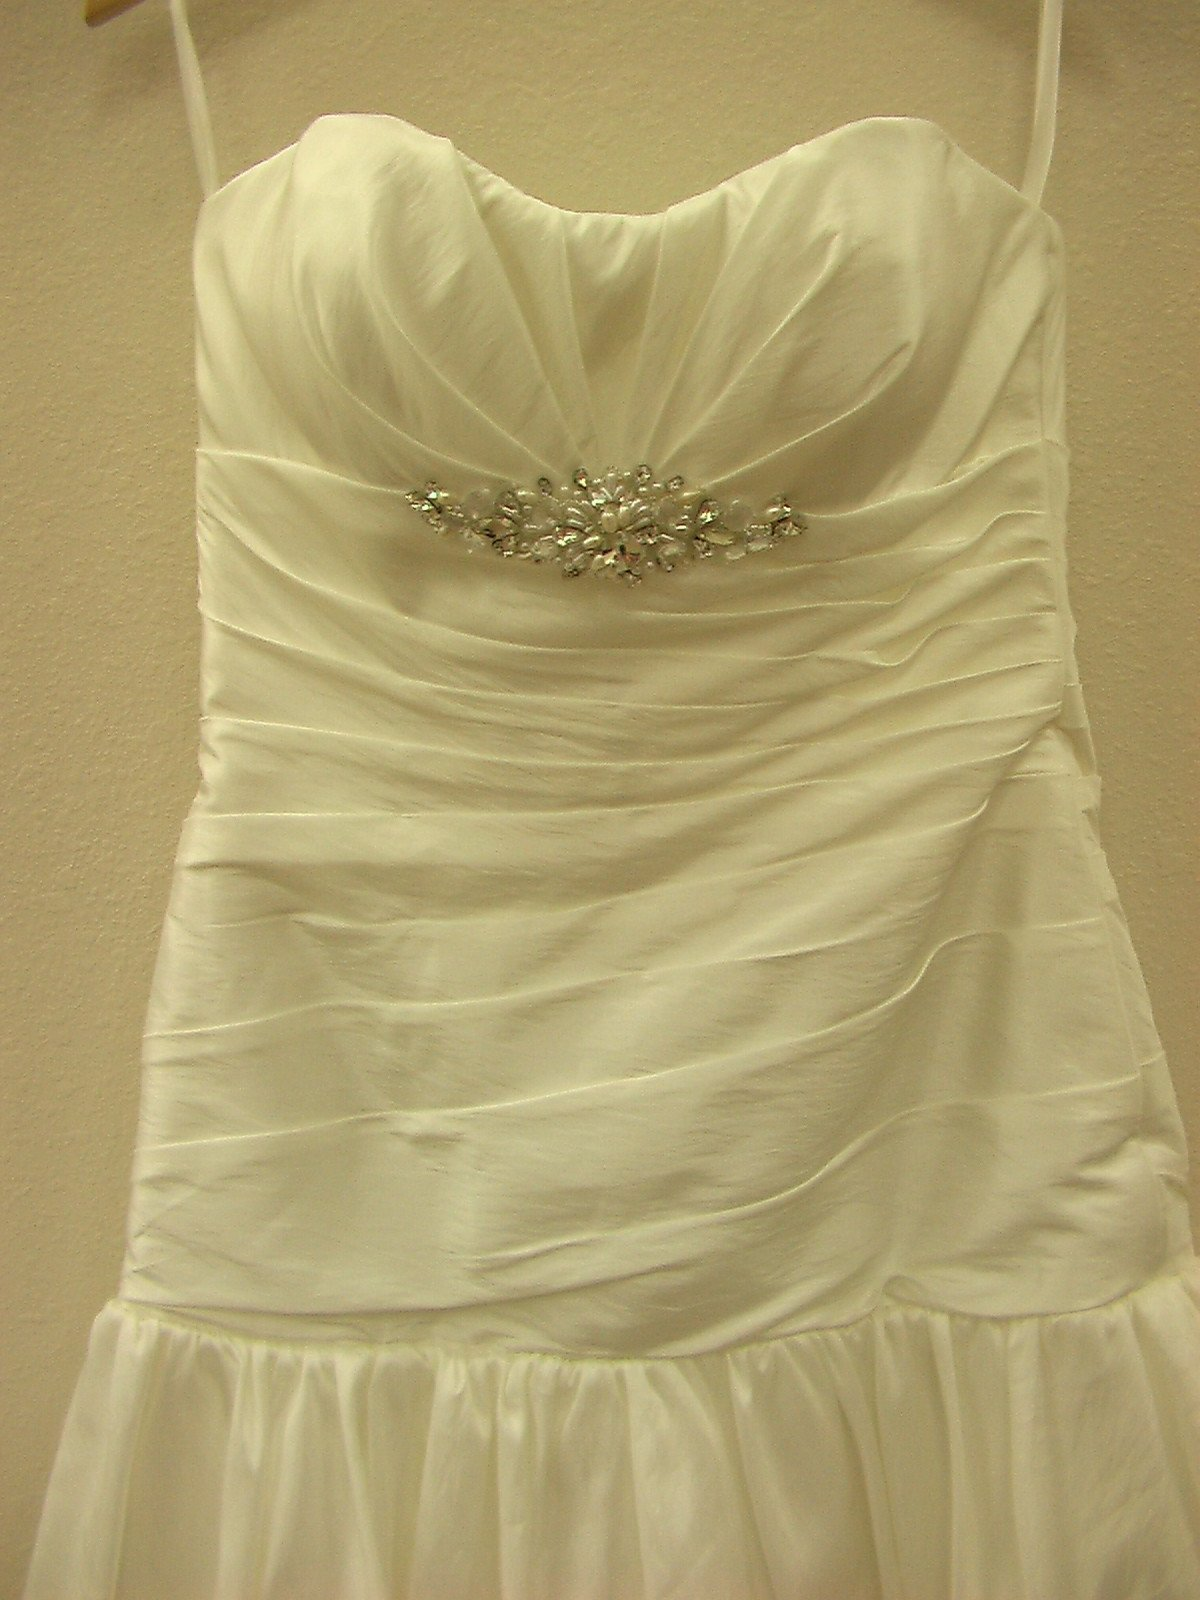 Dere Kiang 11065 Ivory/Silver size 10 In Stock Wedding Dress - Tom's Bridal